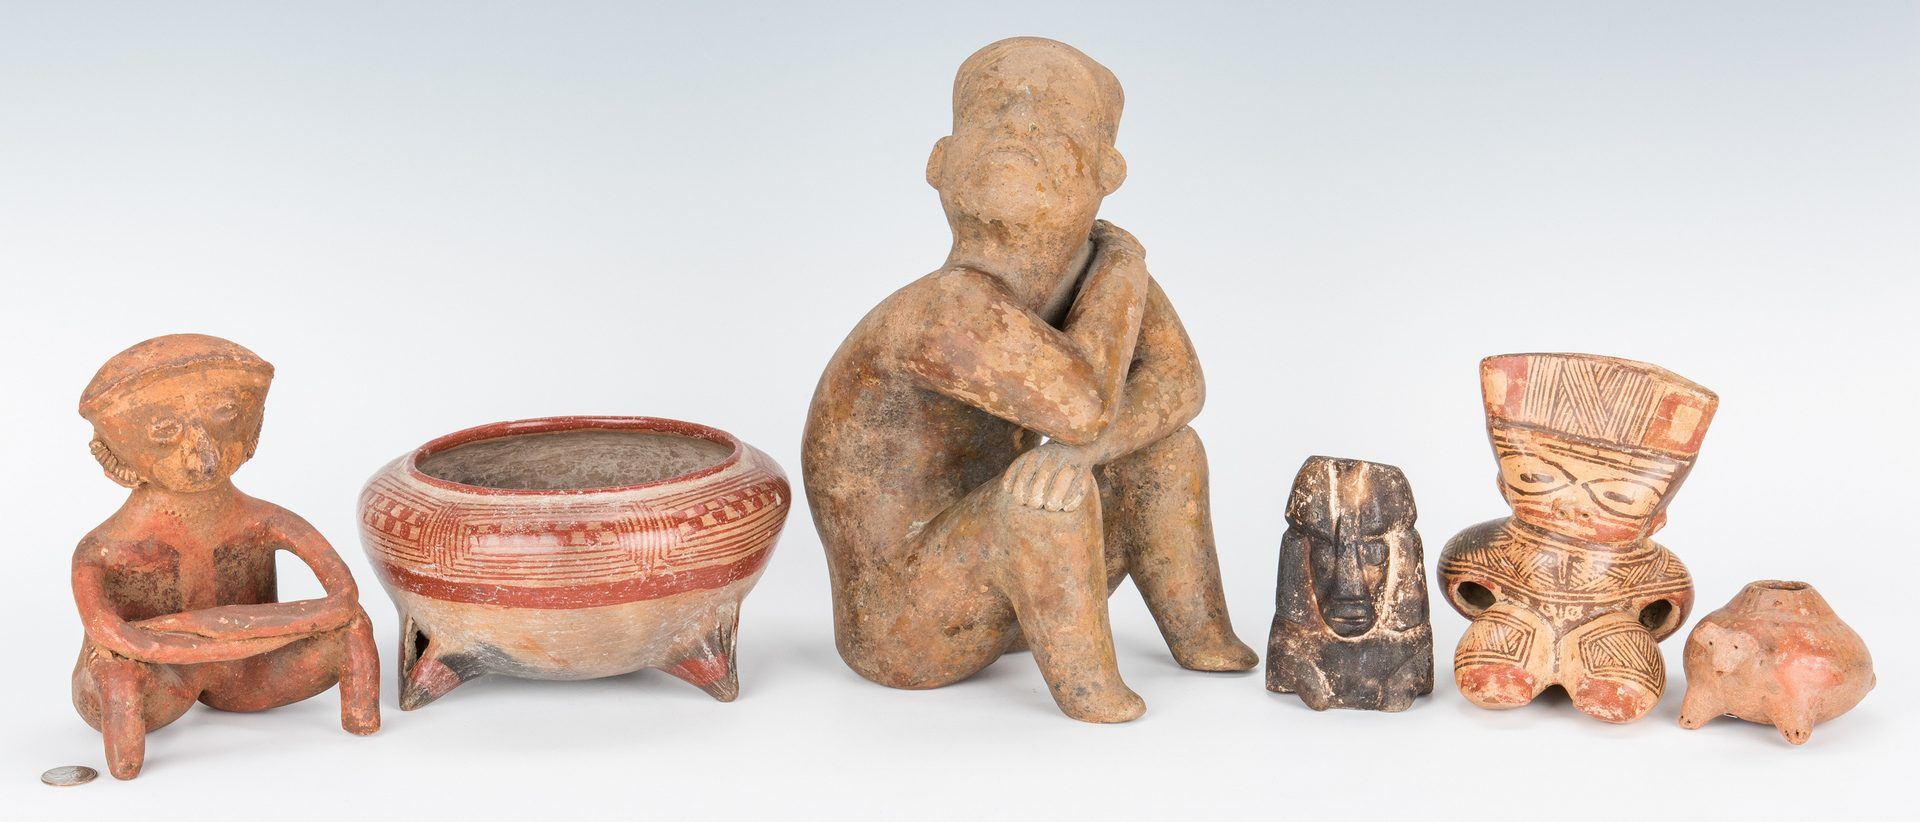 Lot 285: 6 Pre-Columbian Pottery & Stone Effigies, incl. Colima Culture